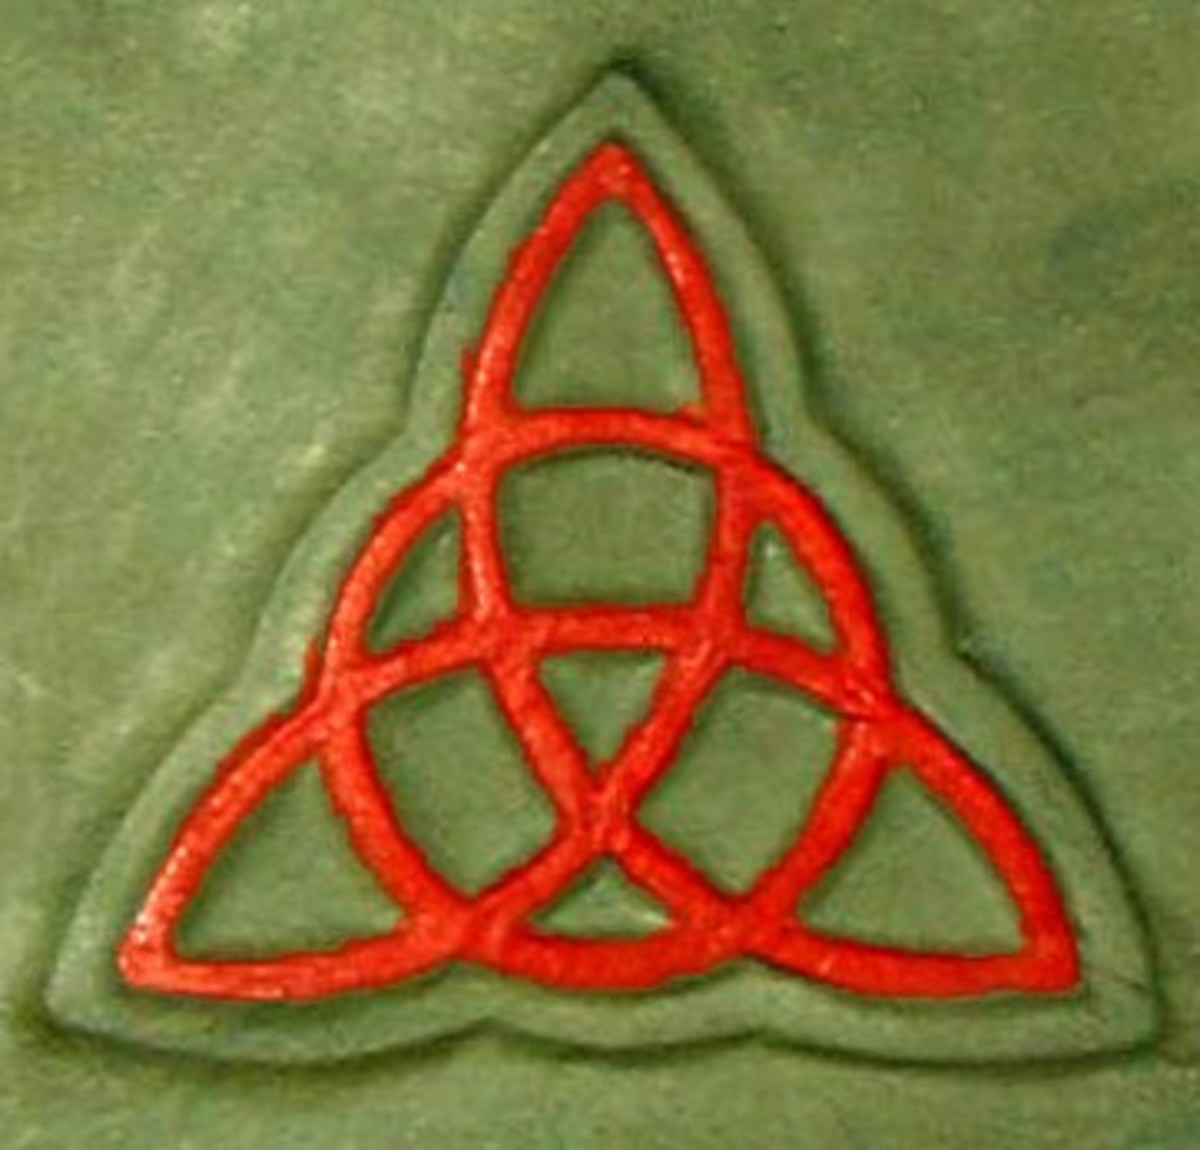 The symbol of the Ceugant